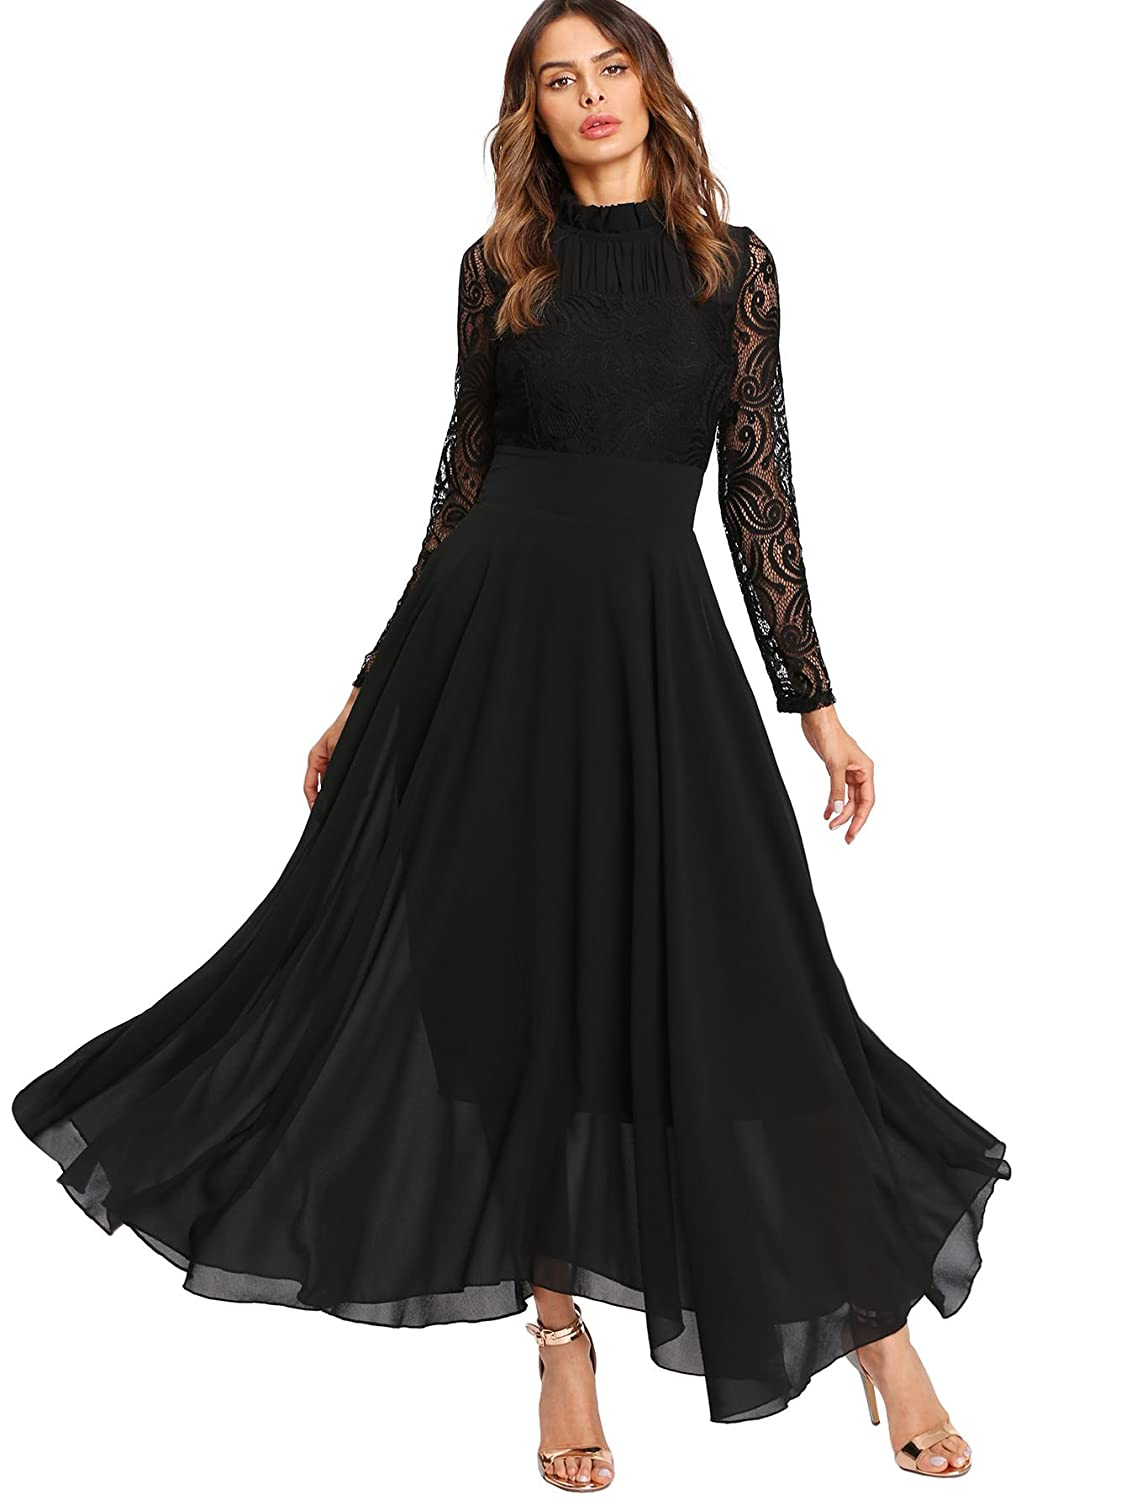 Victorian Dresses | Victorian Ballgowns | Victorian Clothing Milumia Womens Vintage Floral Lace Long Sleeve Ruched Neck Flowy Long Dress $28.99 AT vintagedancer.com